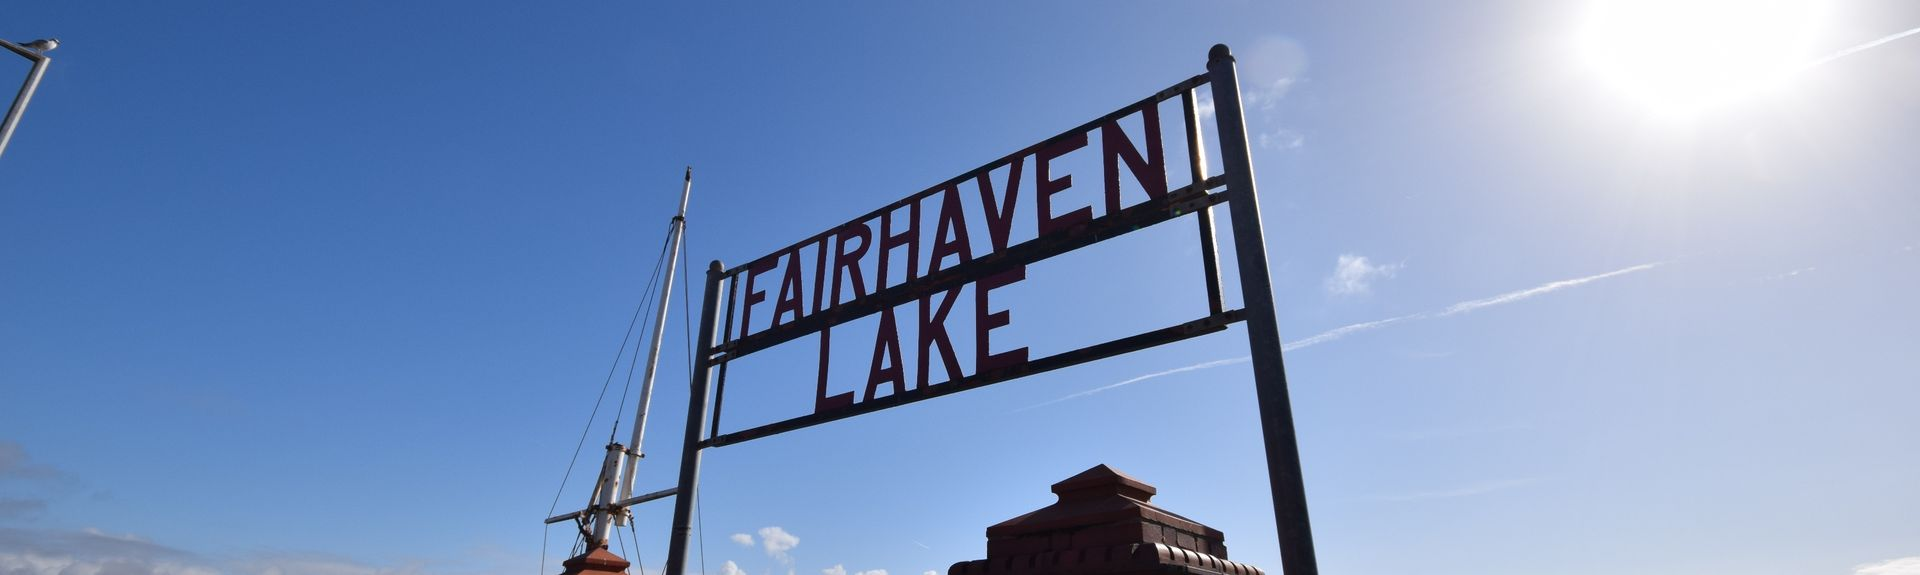 Fairhaven Lake, Lytham St. Anne's, England, UK